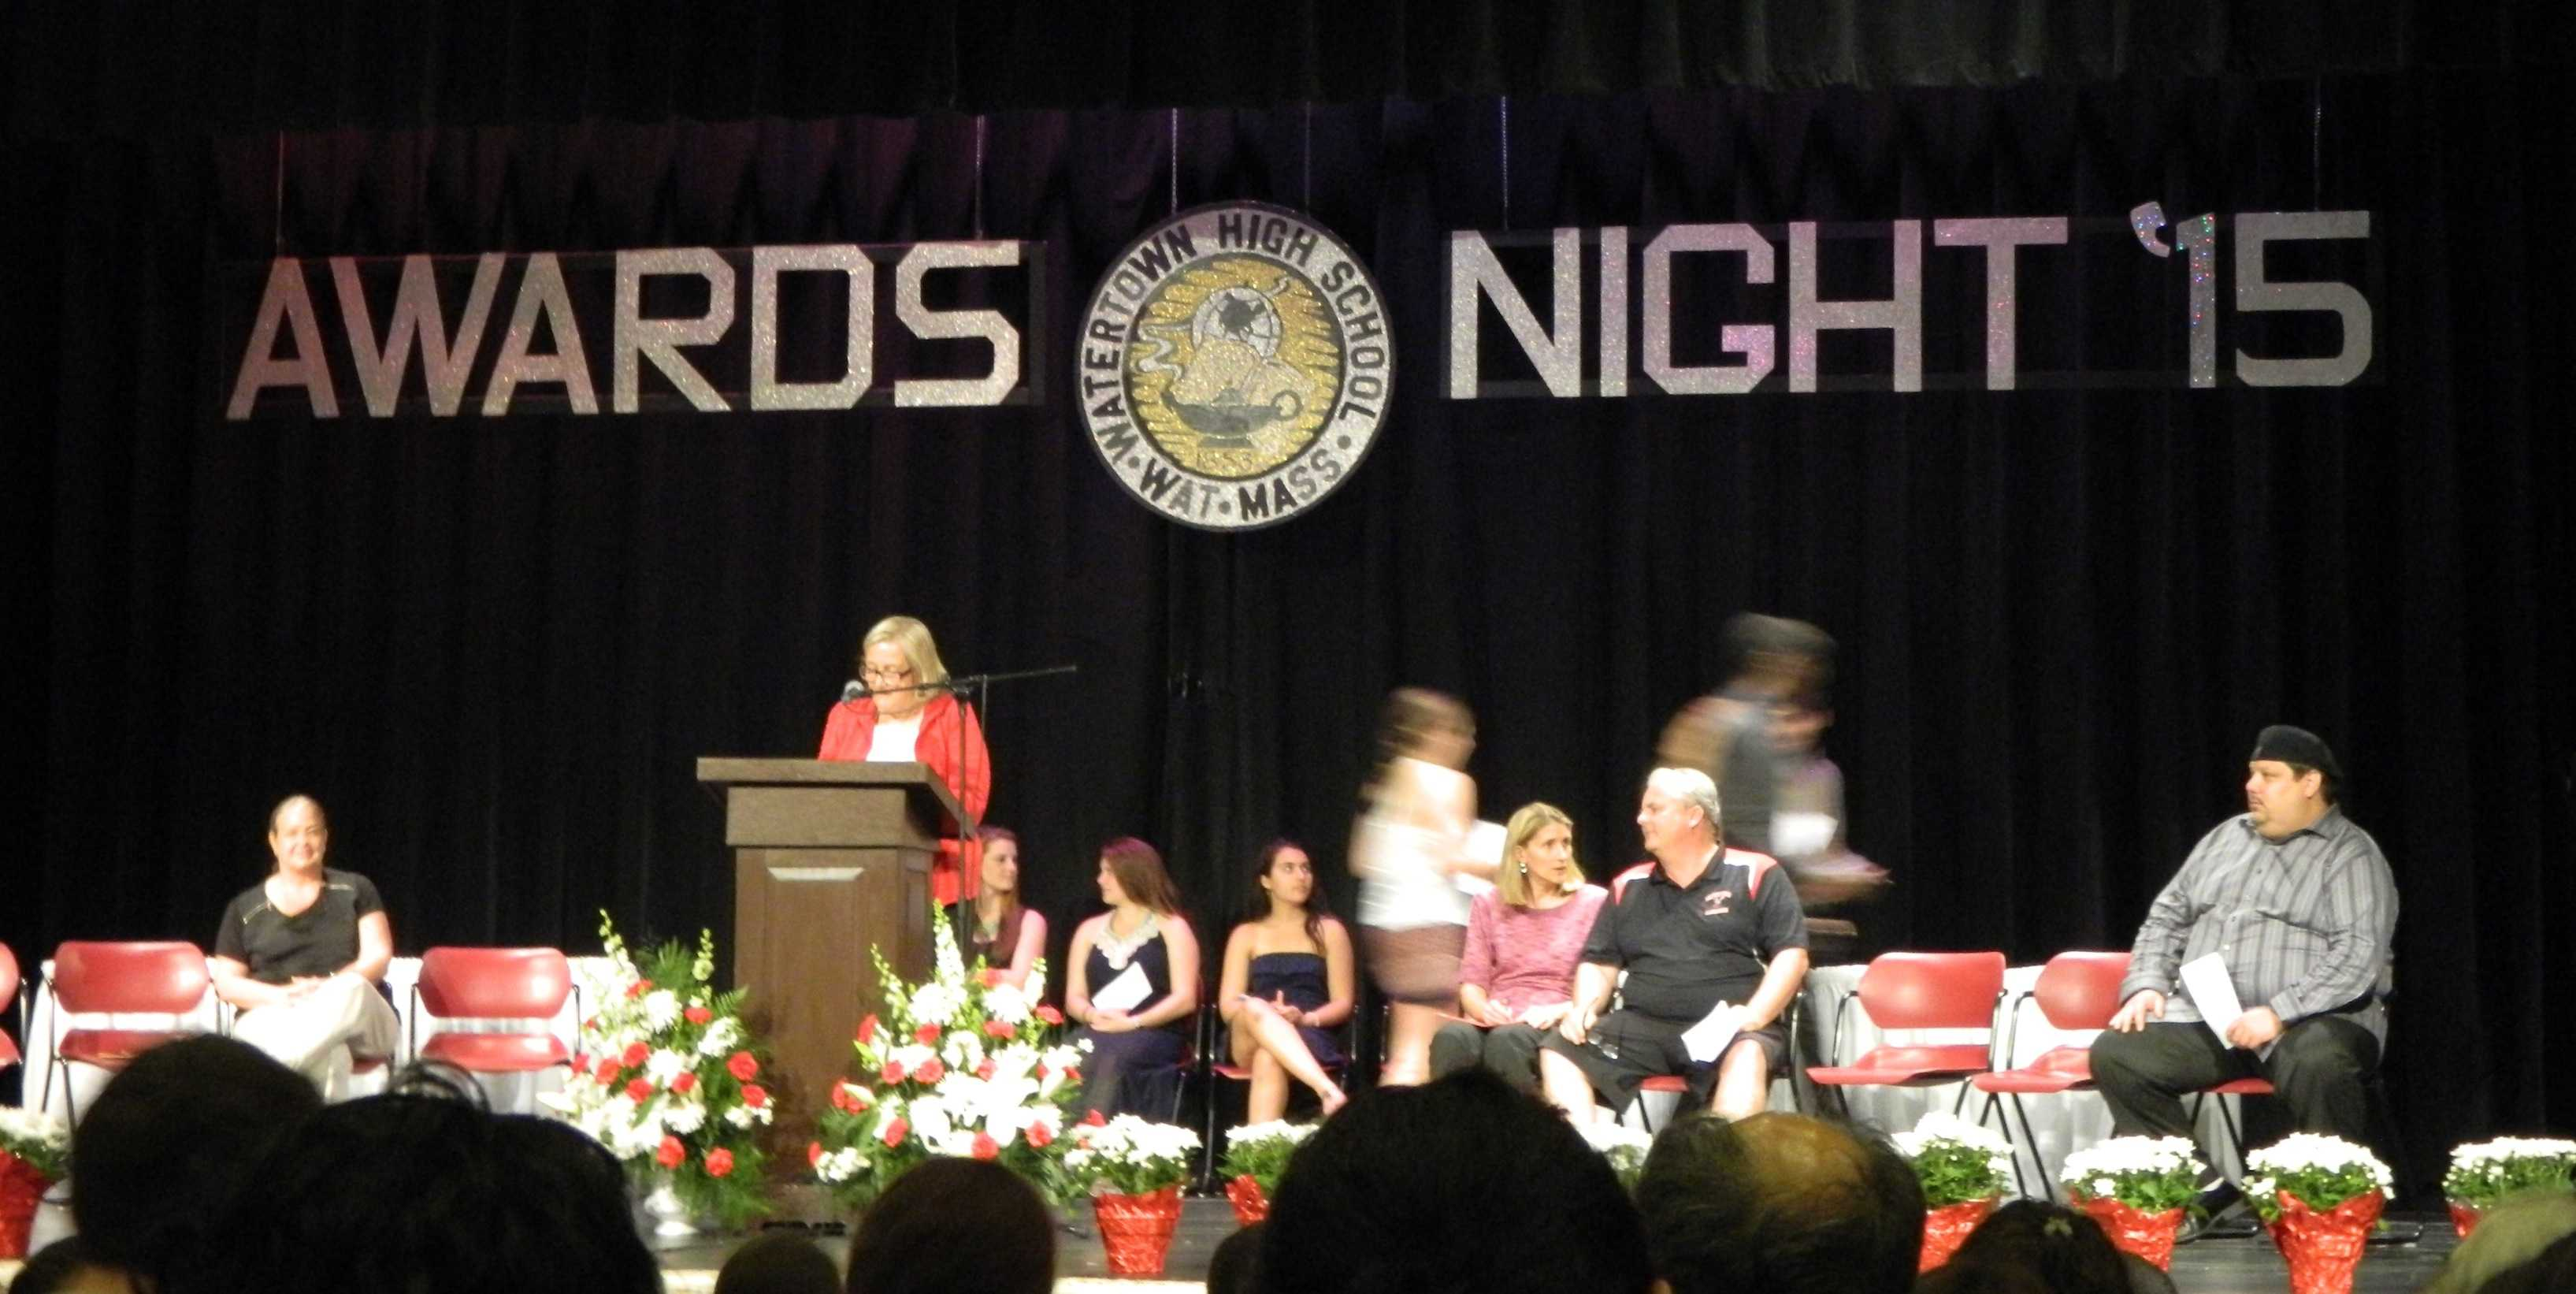 The annual Awards Night at Watertown High School was held May 28, 2015, and hosted by principal Shirley Lundberg. More than $100,000 in scholarships were awarded to Watertown High seniors.